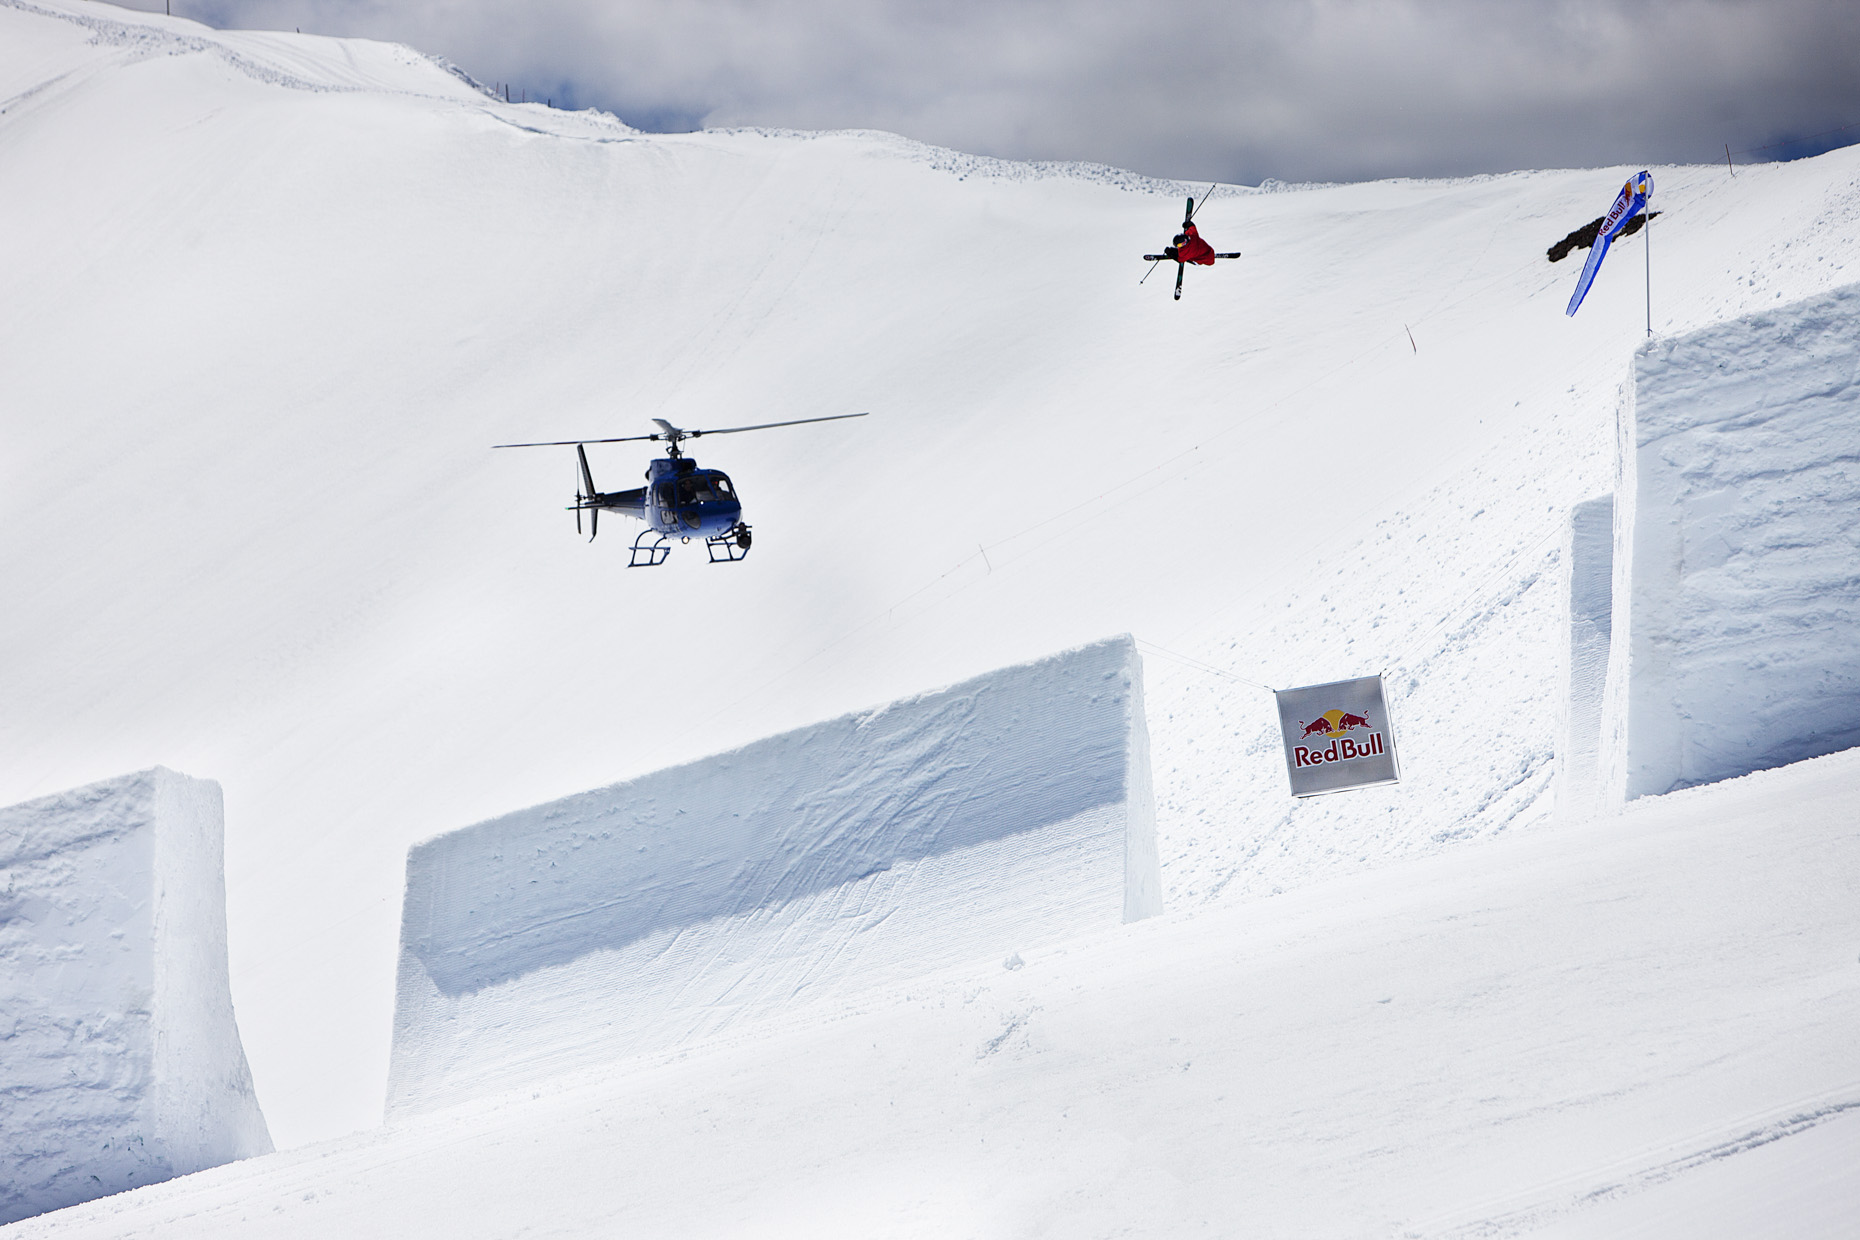 Simon Dumont pipe cubed for Red Bull by Boston based commercial sports photographer Brian Nevins